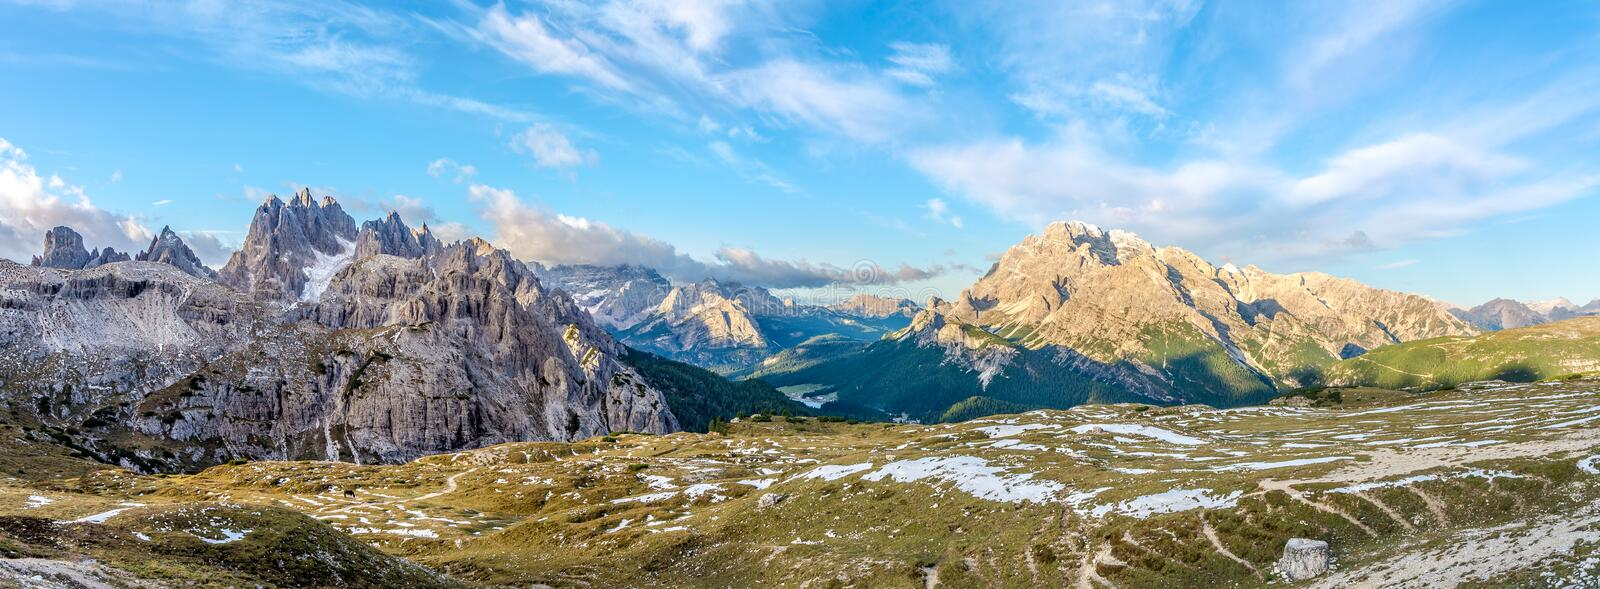 Panoramic view at the mountains from south side Tre Cime di Lavaredo in Dolomites stock image